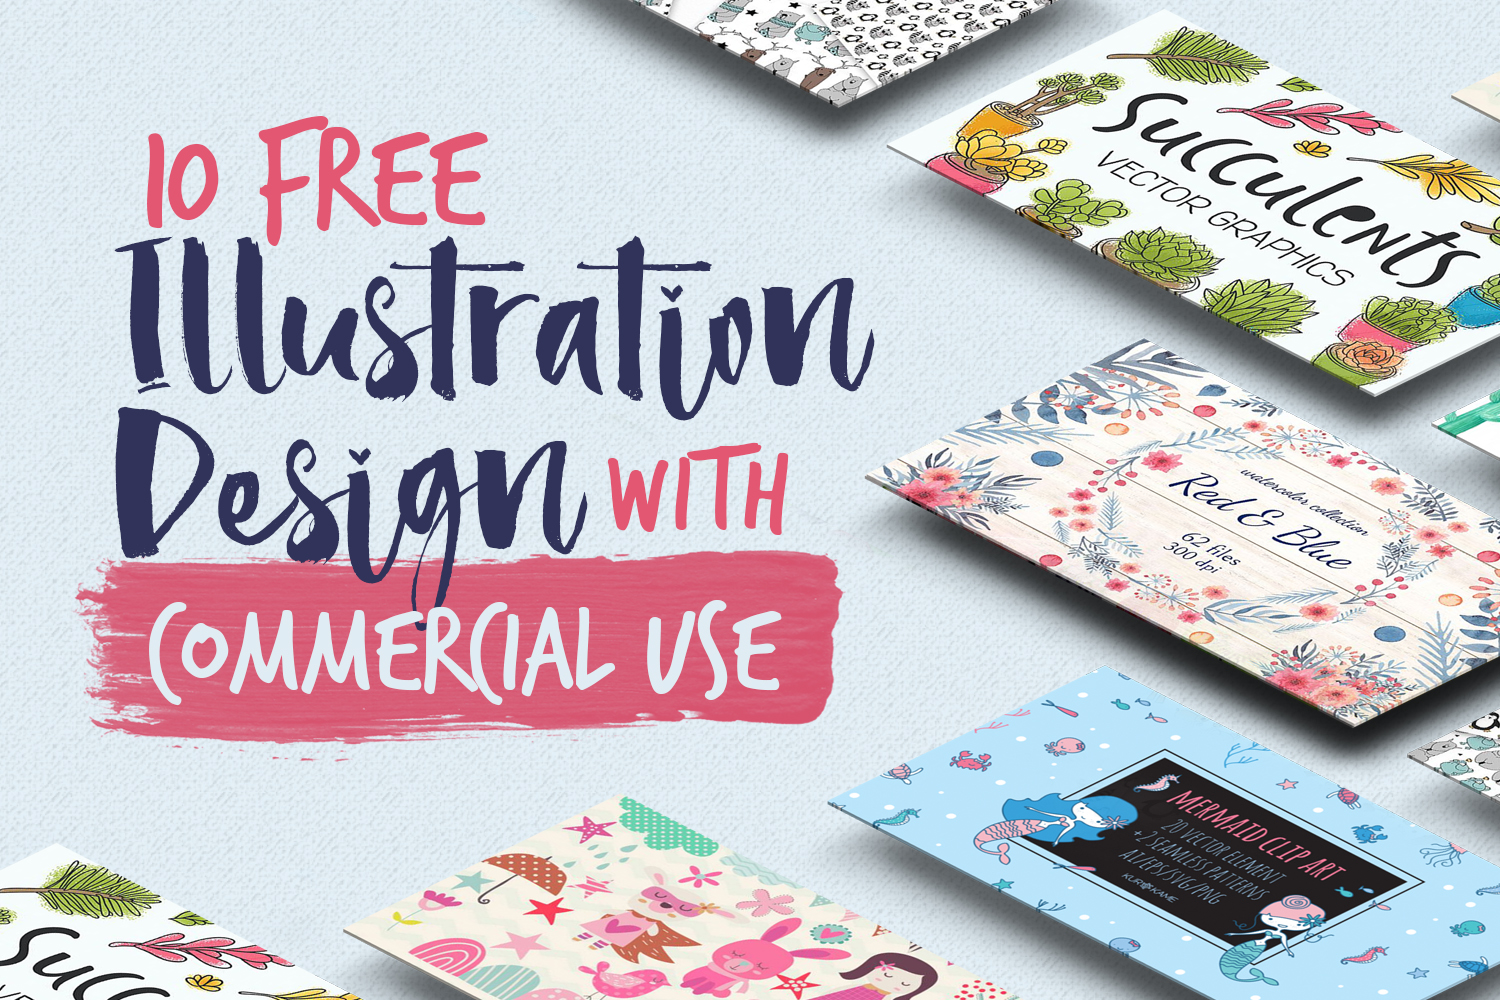 10 Free Illustration Designs with Commercial Use